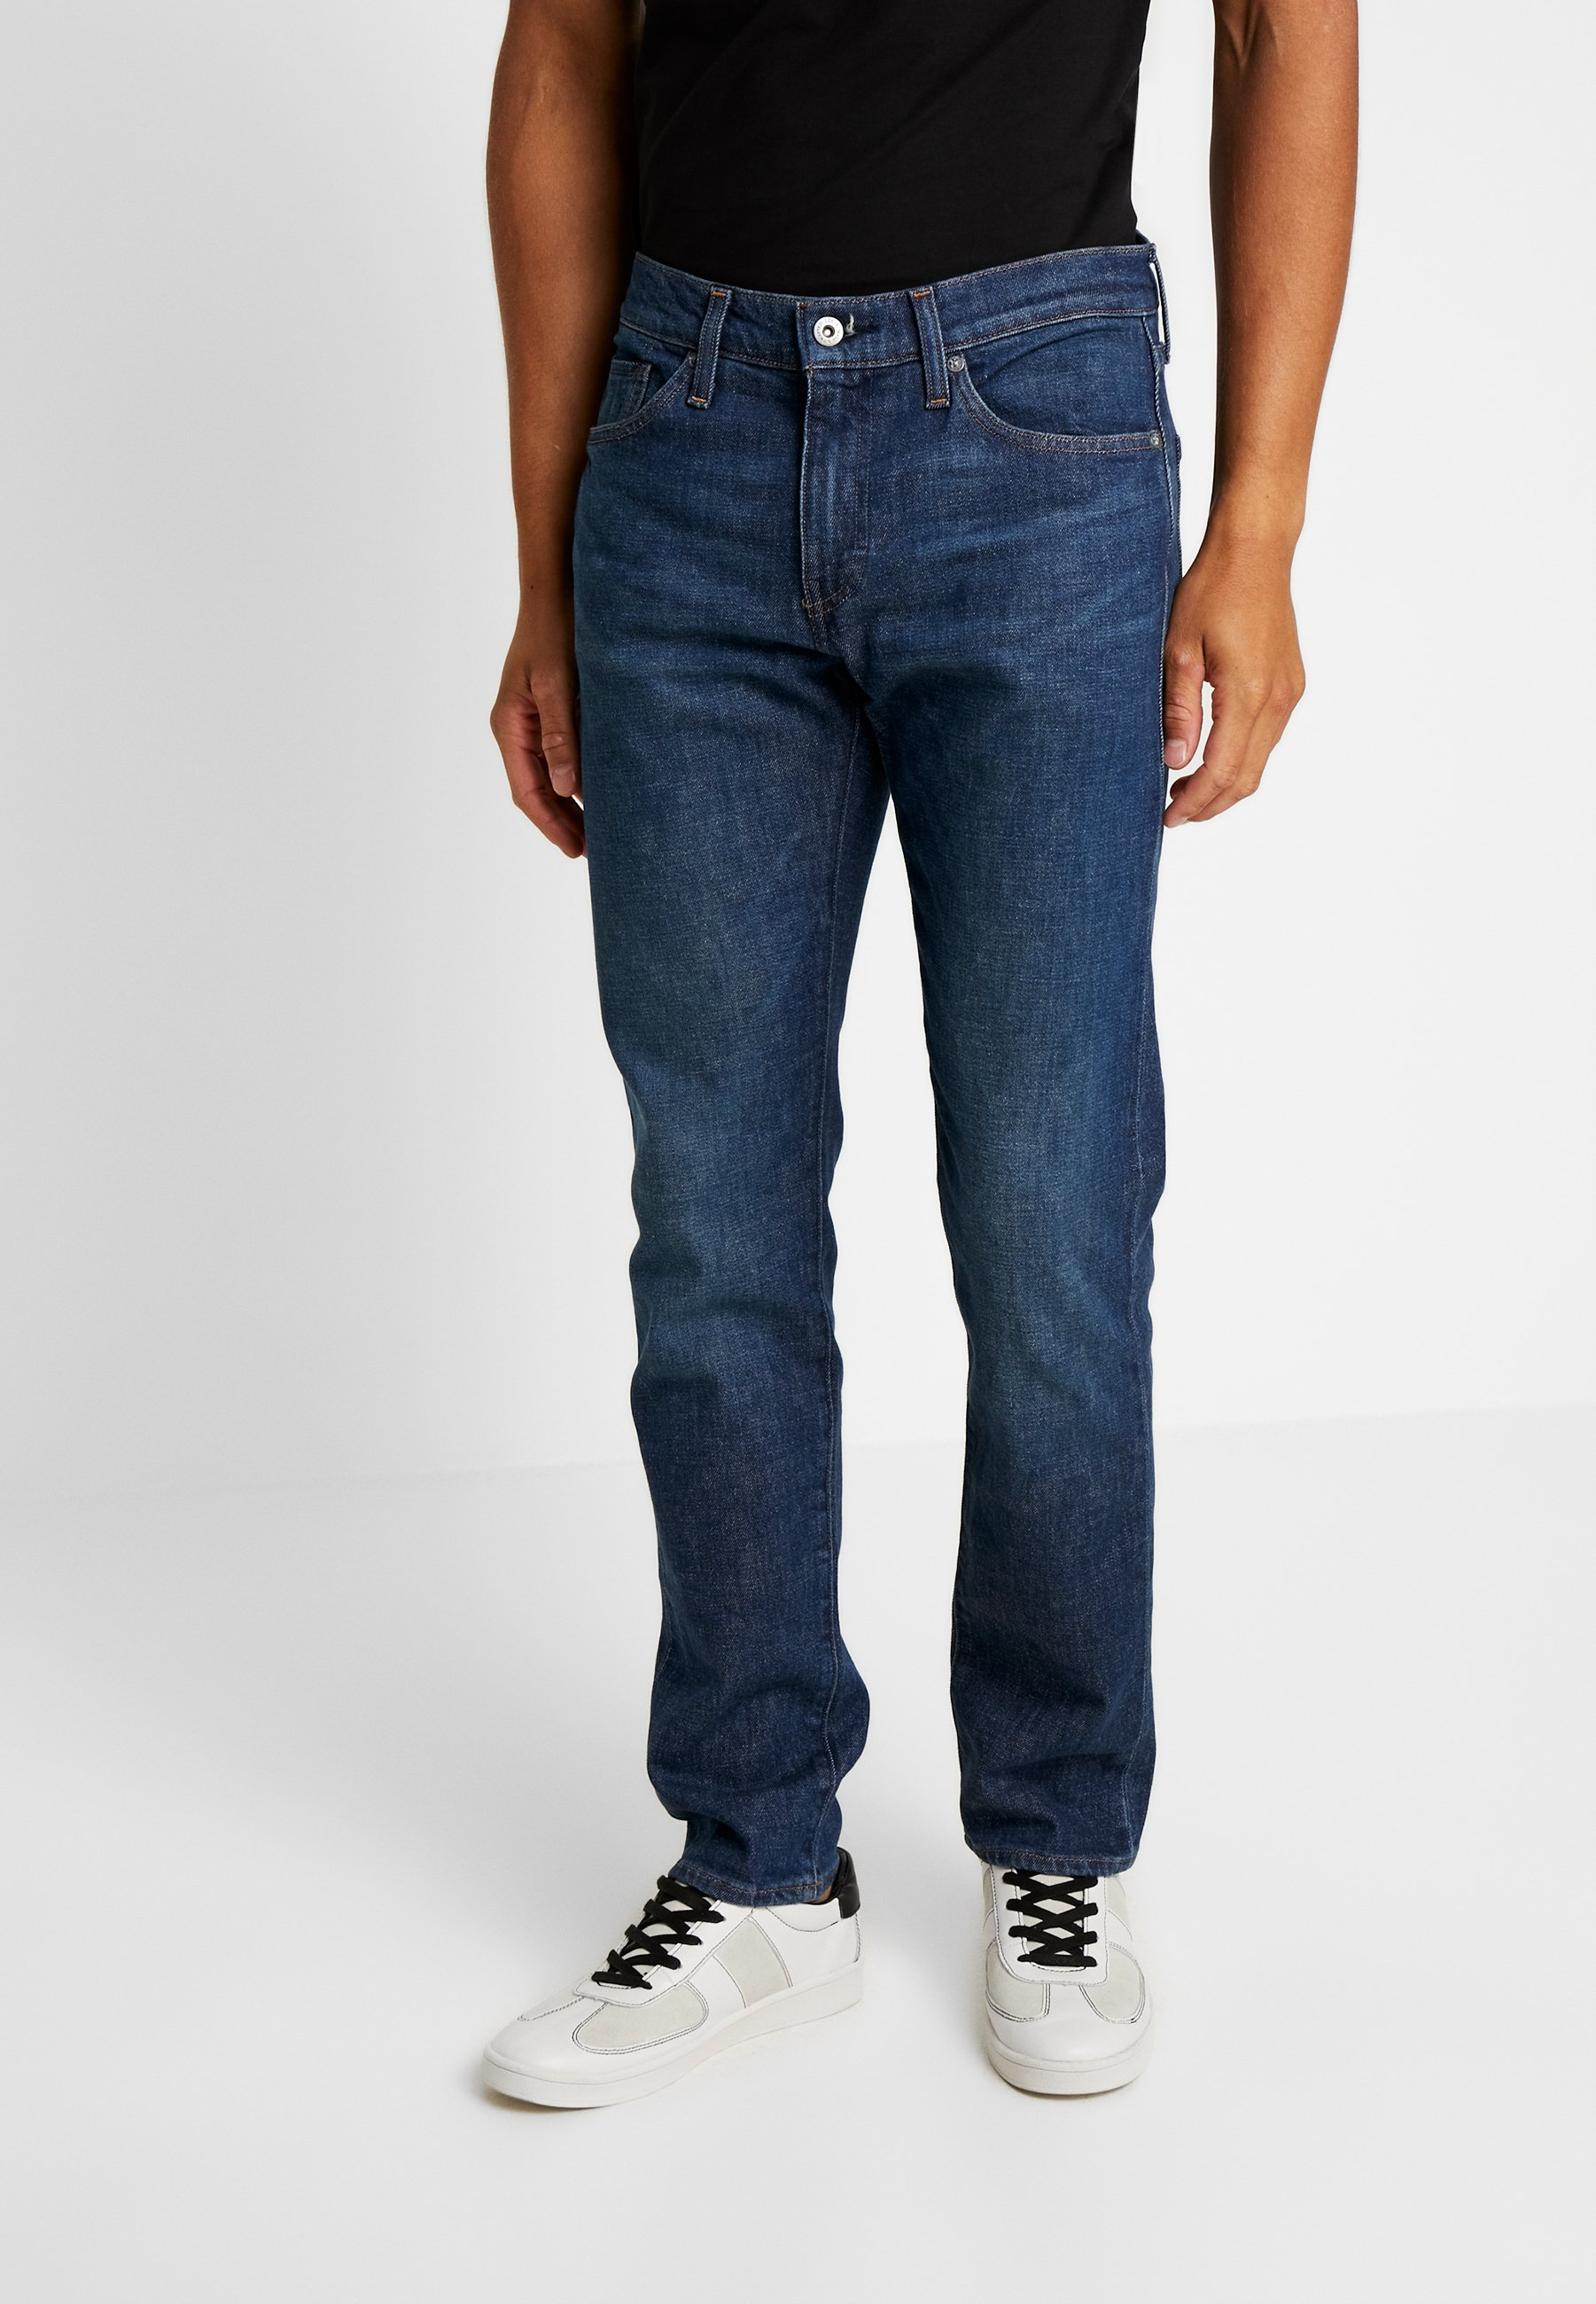 Original Men's Clothing Levi's® Made & Crafted LMC 511 Slim fit jeans marfa HofUZFTLE